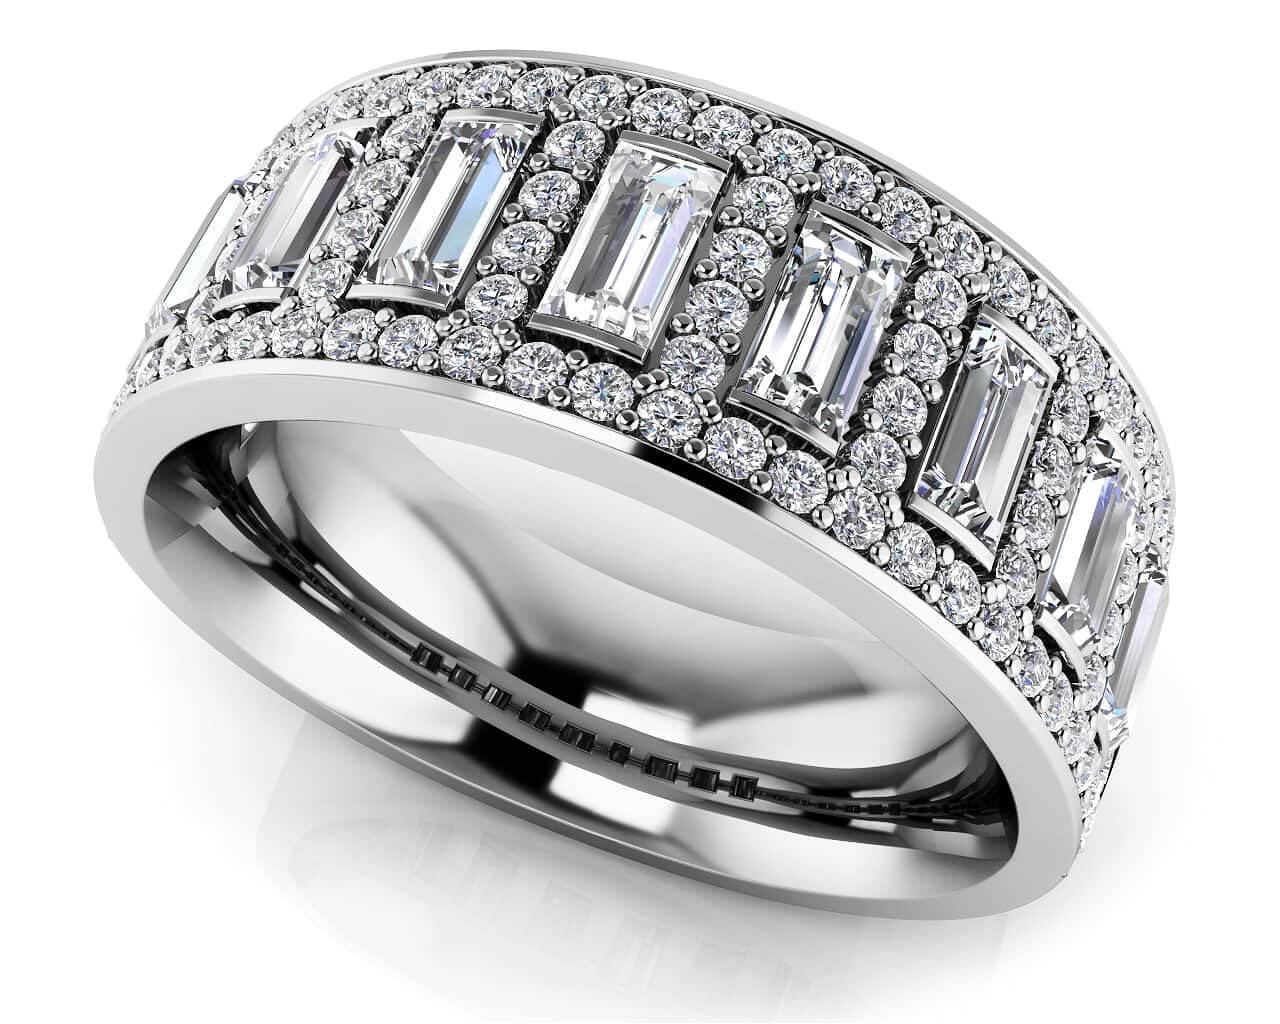 bands photo anniversary of view wedding rings with diamond current